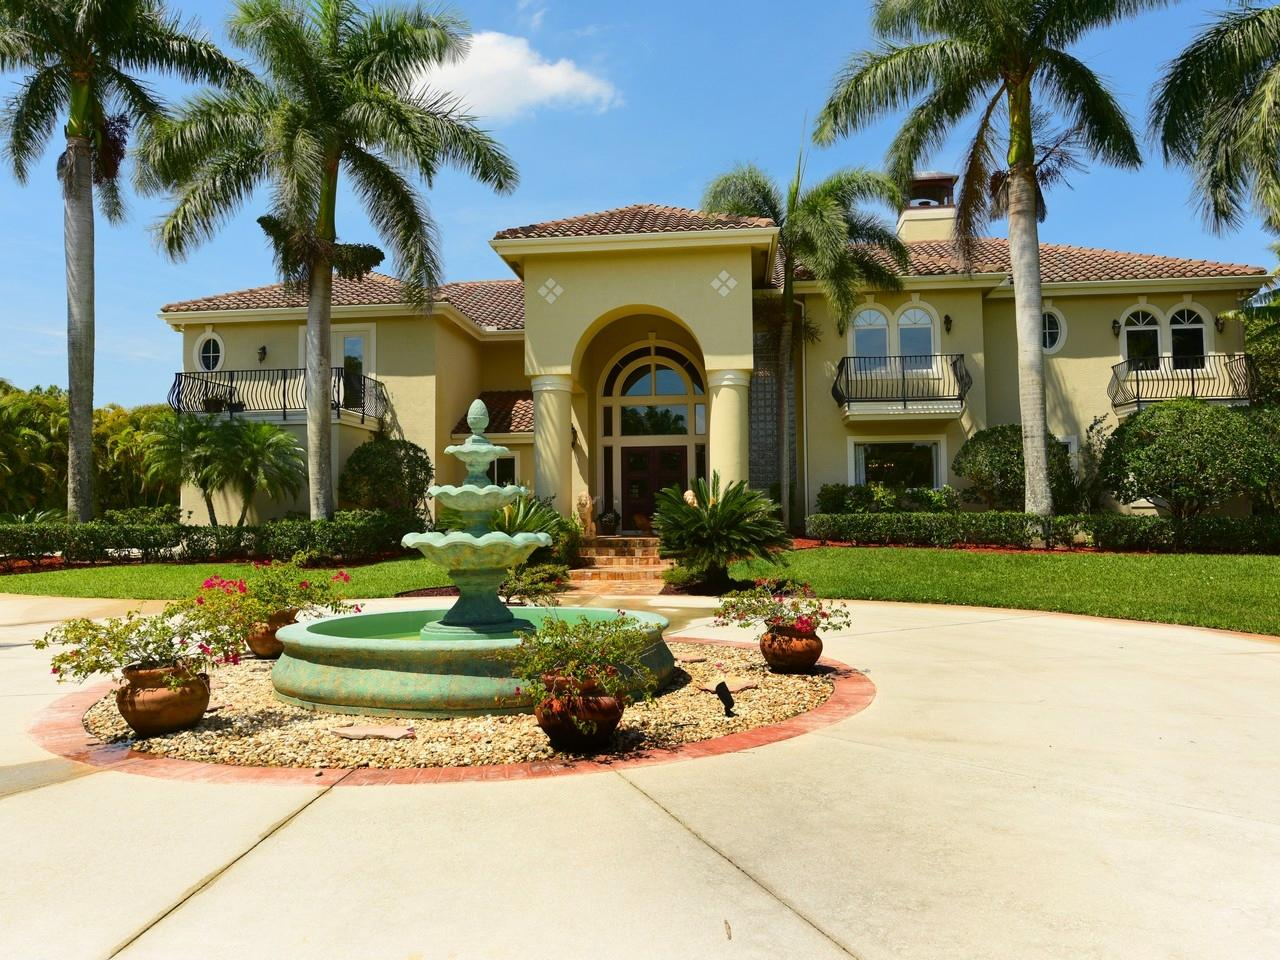 New Home for sale at 2584 Ranch Acres Circle in Jupiter